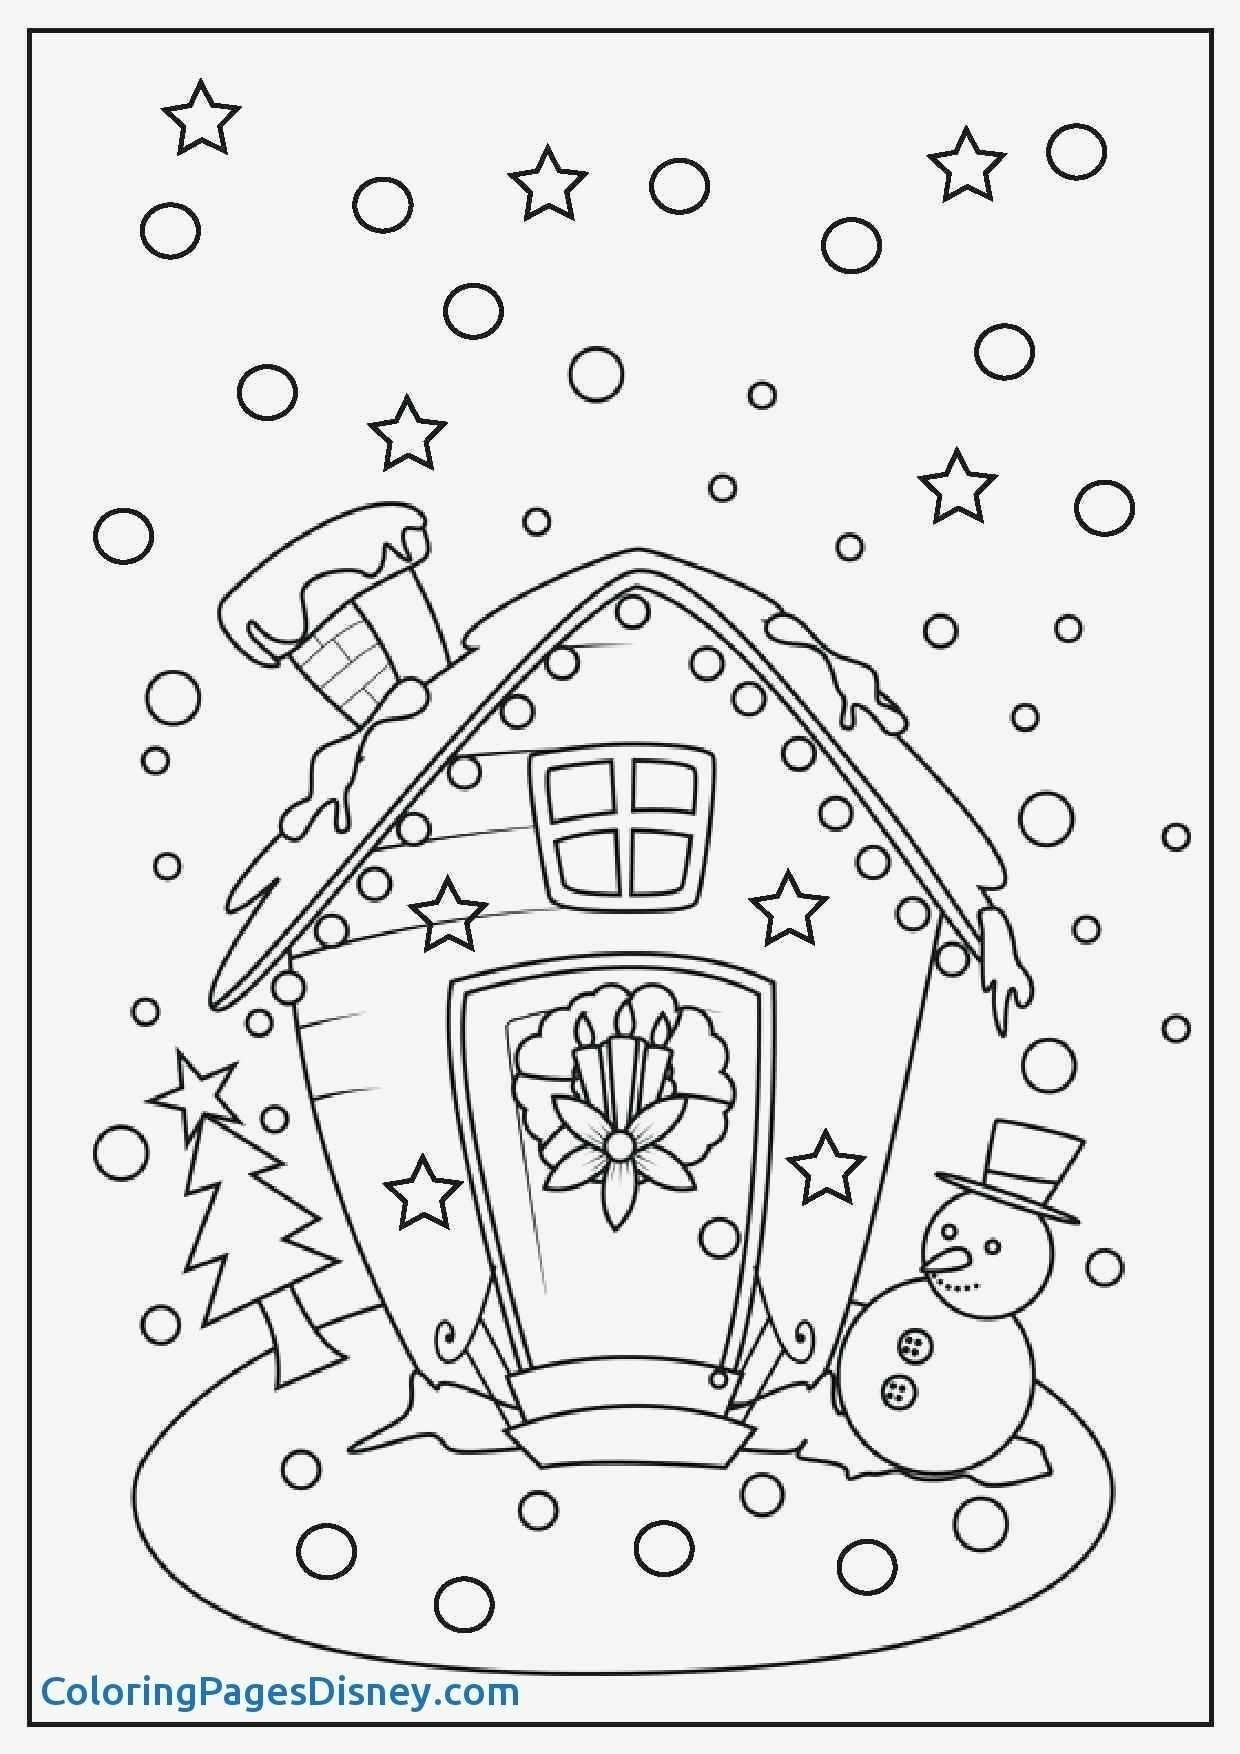 Christmas Coloring By Numbers Printable With Color Valid 1275 1650